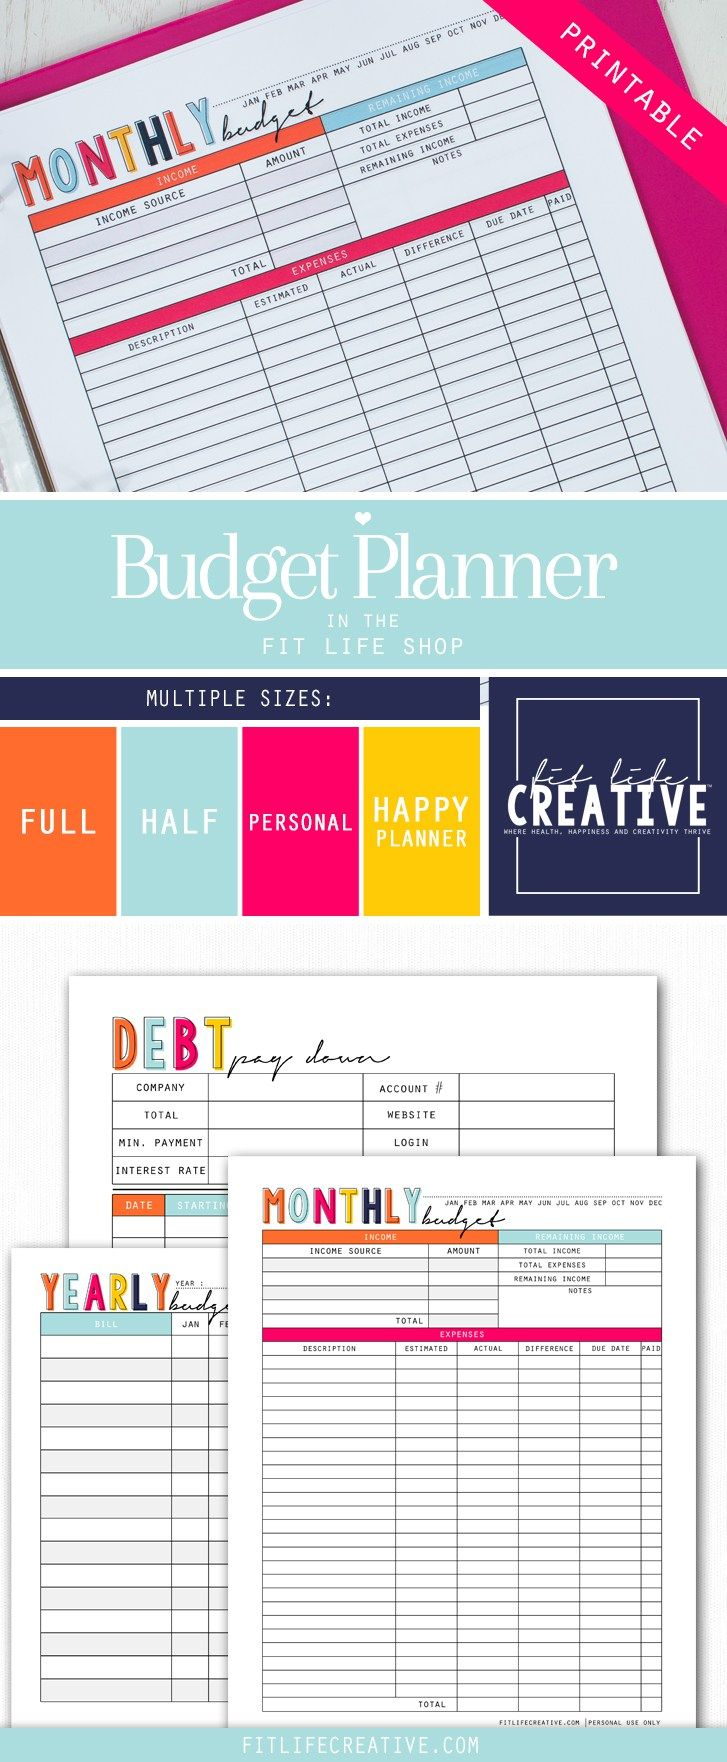 Printable Budget Planner Perfect Way To Get All Of Your Finance In